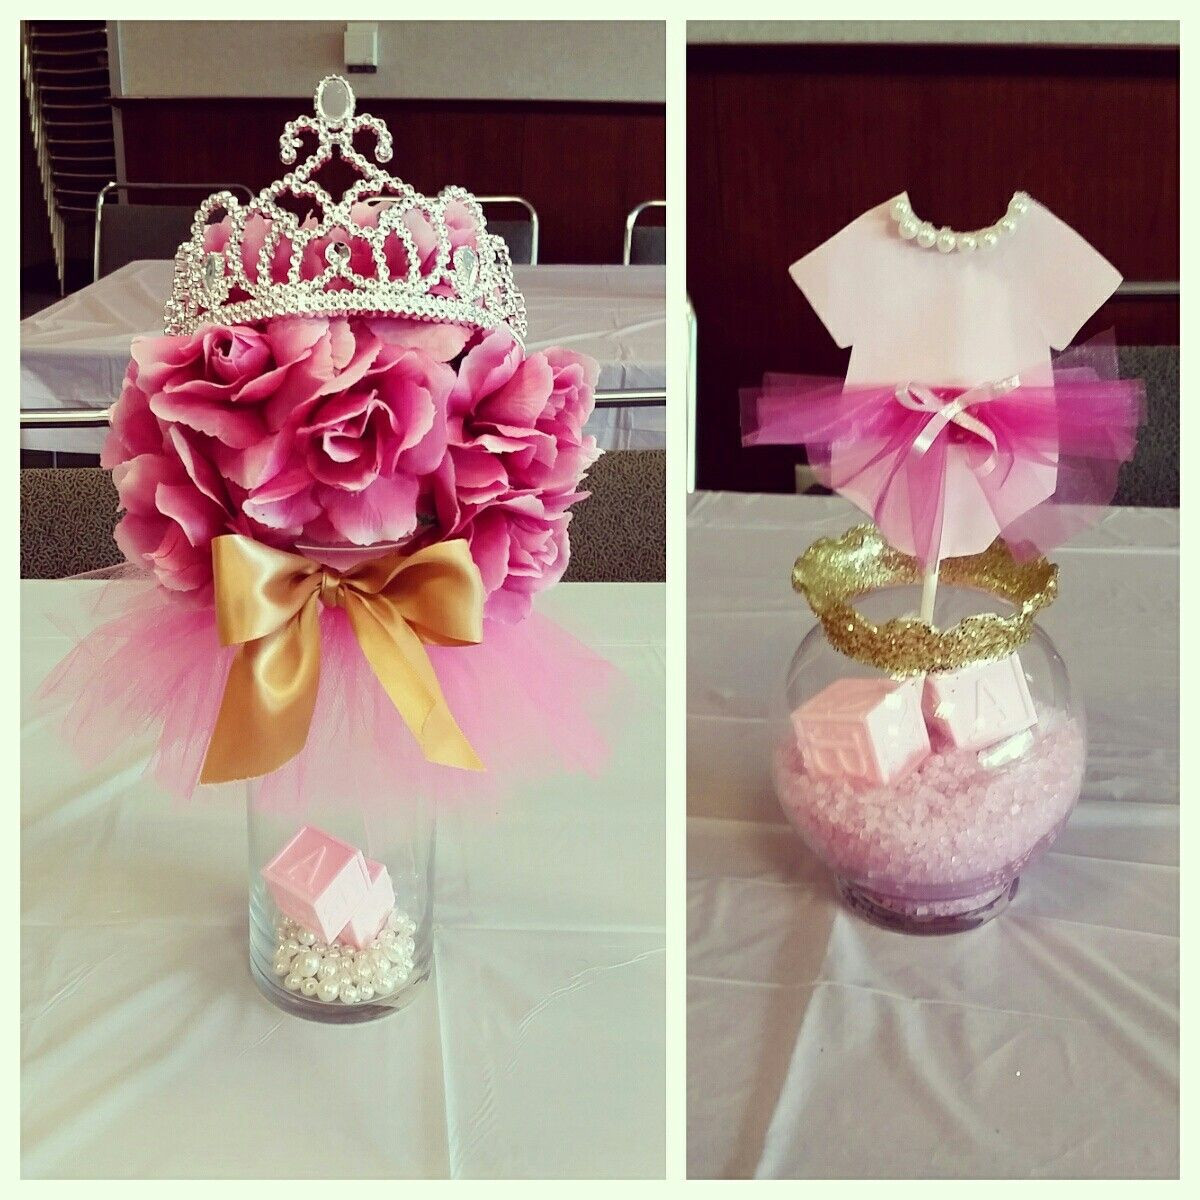 DIY Baby Shower Decorations For Girls  Tutus & Tiaras Baby Shower centerpieces pinkandgold